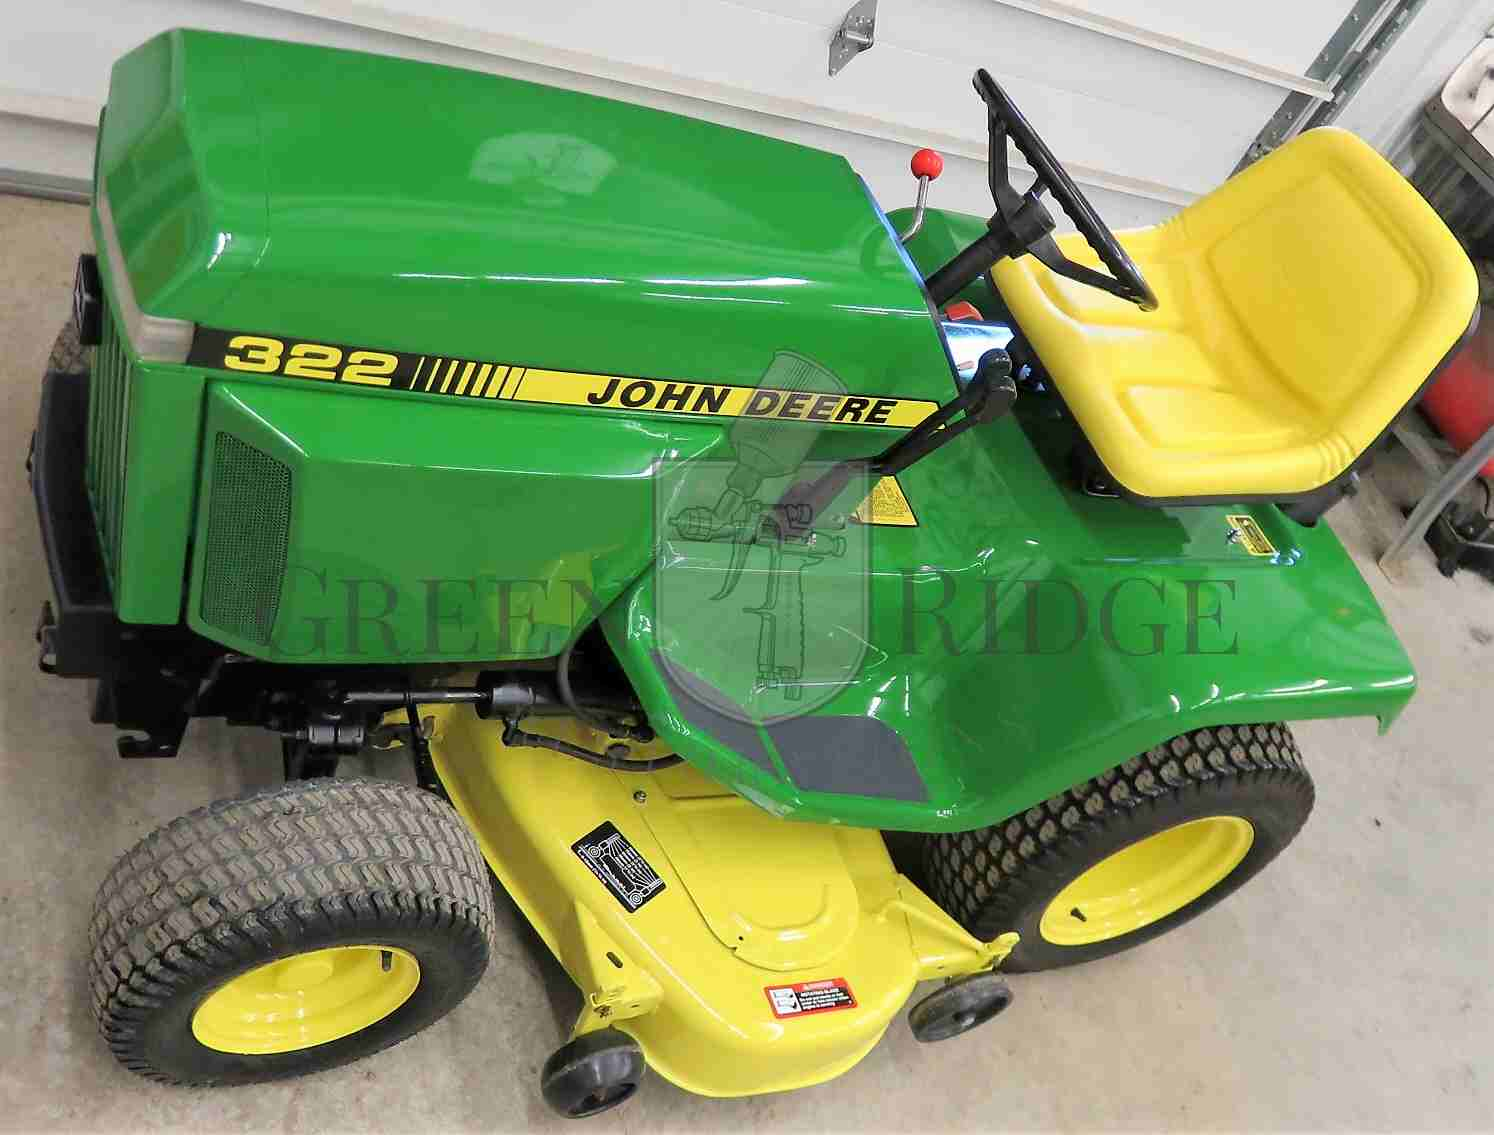 John Deere 322 for sale